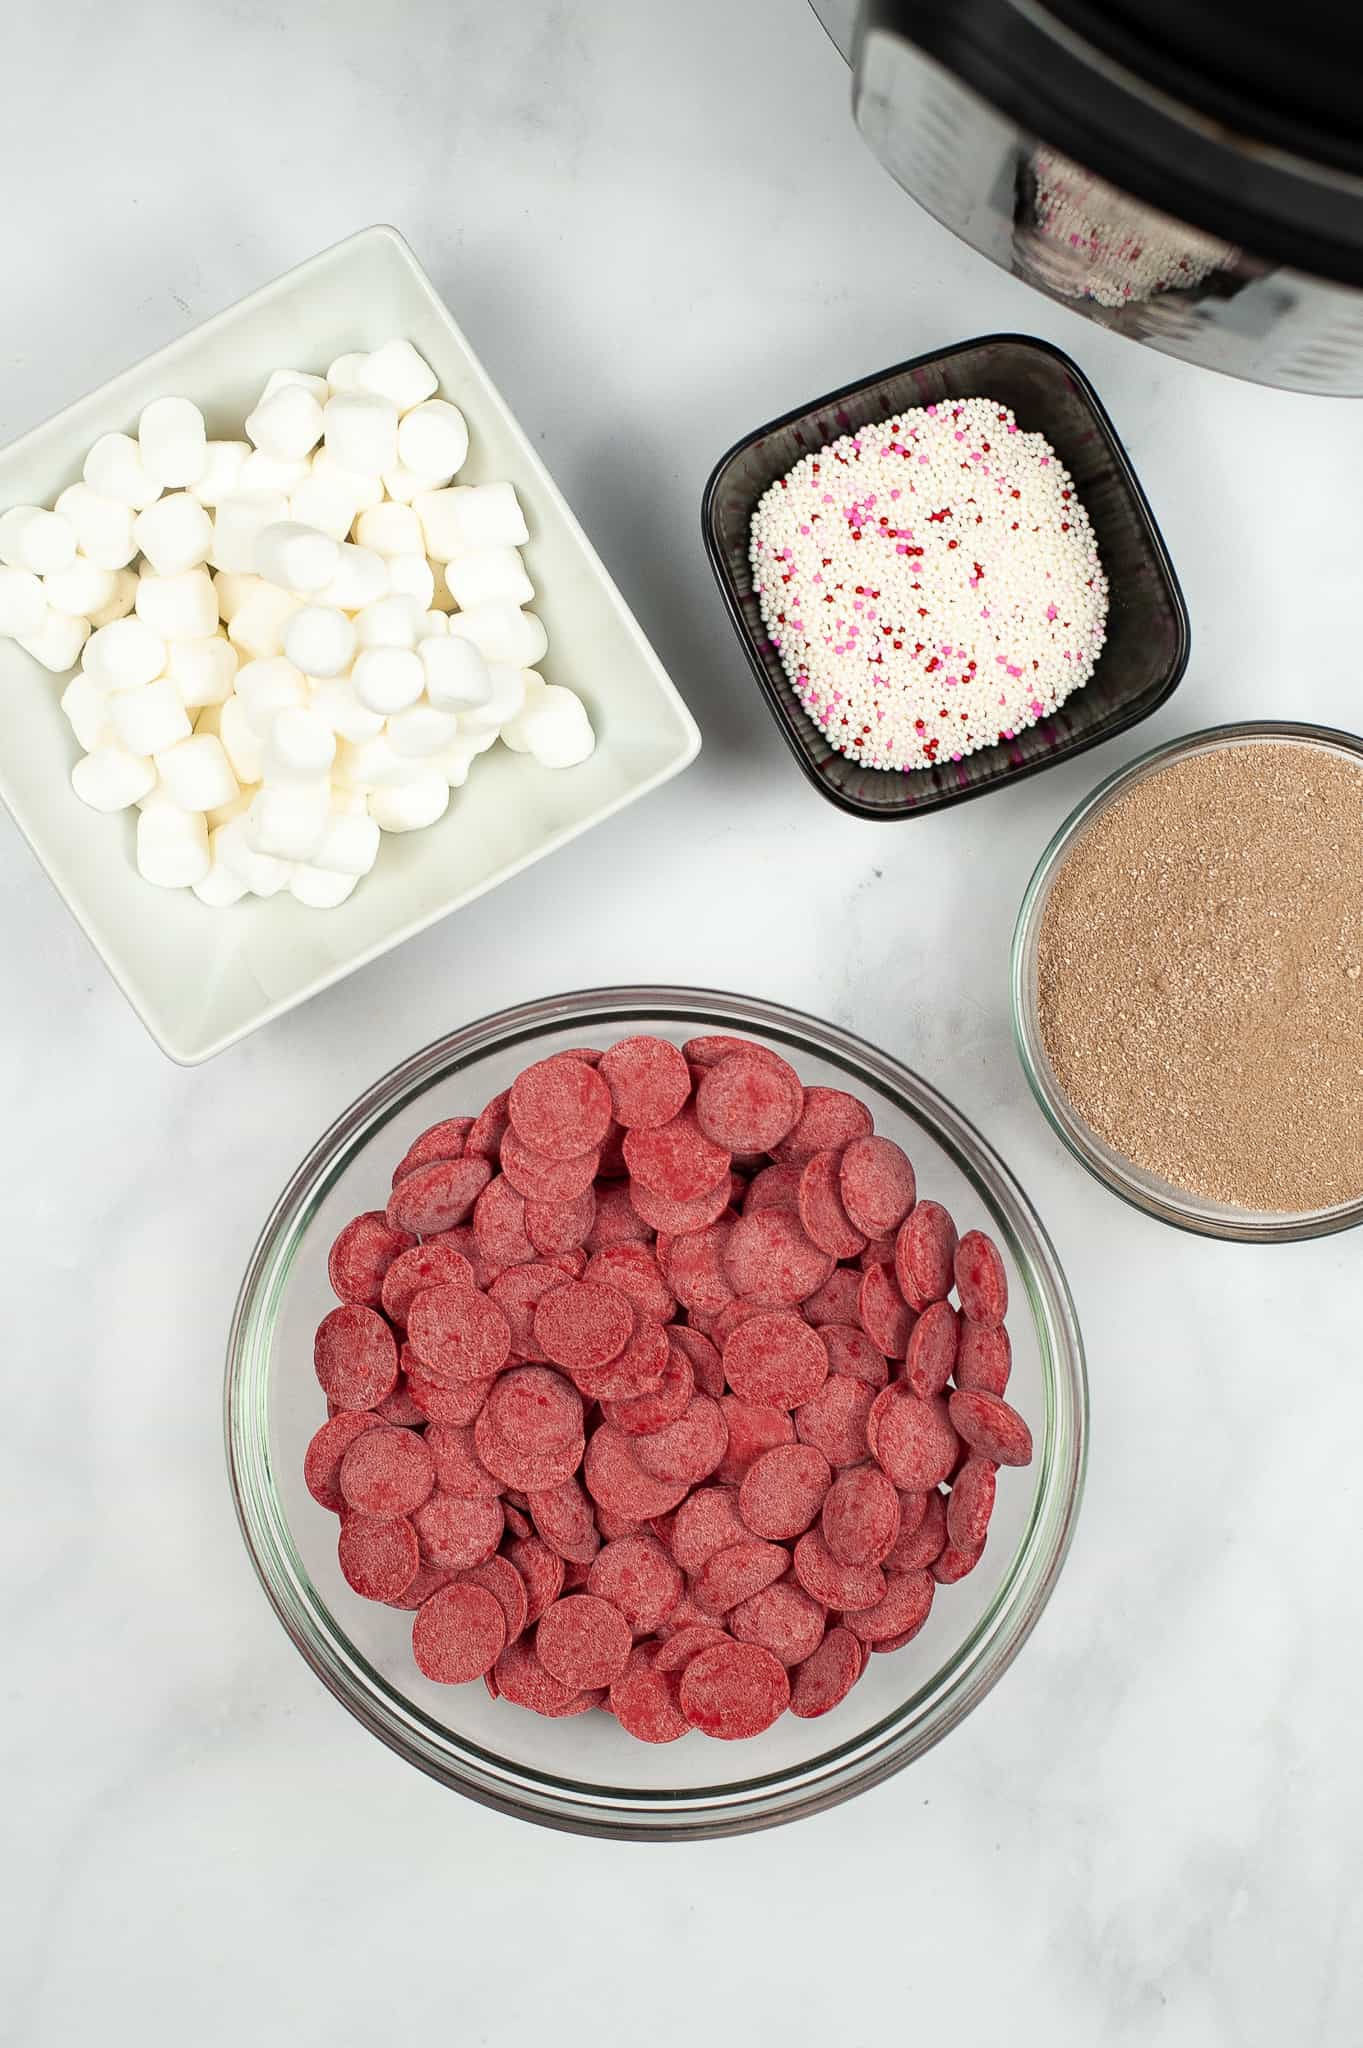 Ingredients for how to make hot chocolate bombs